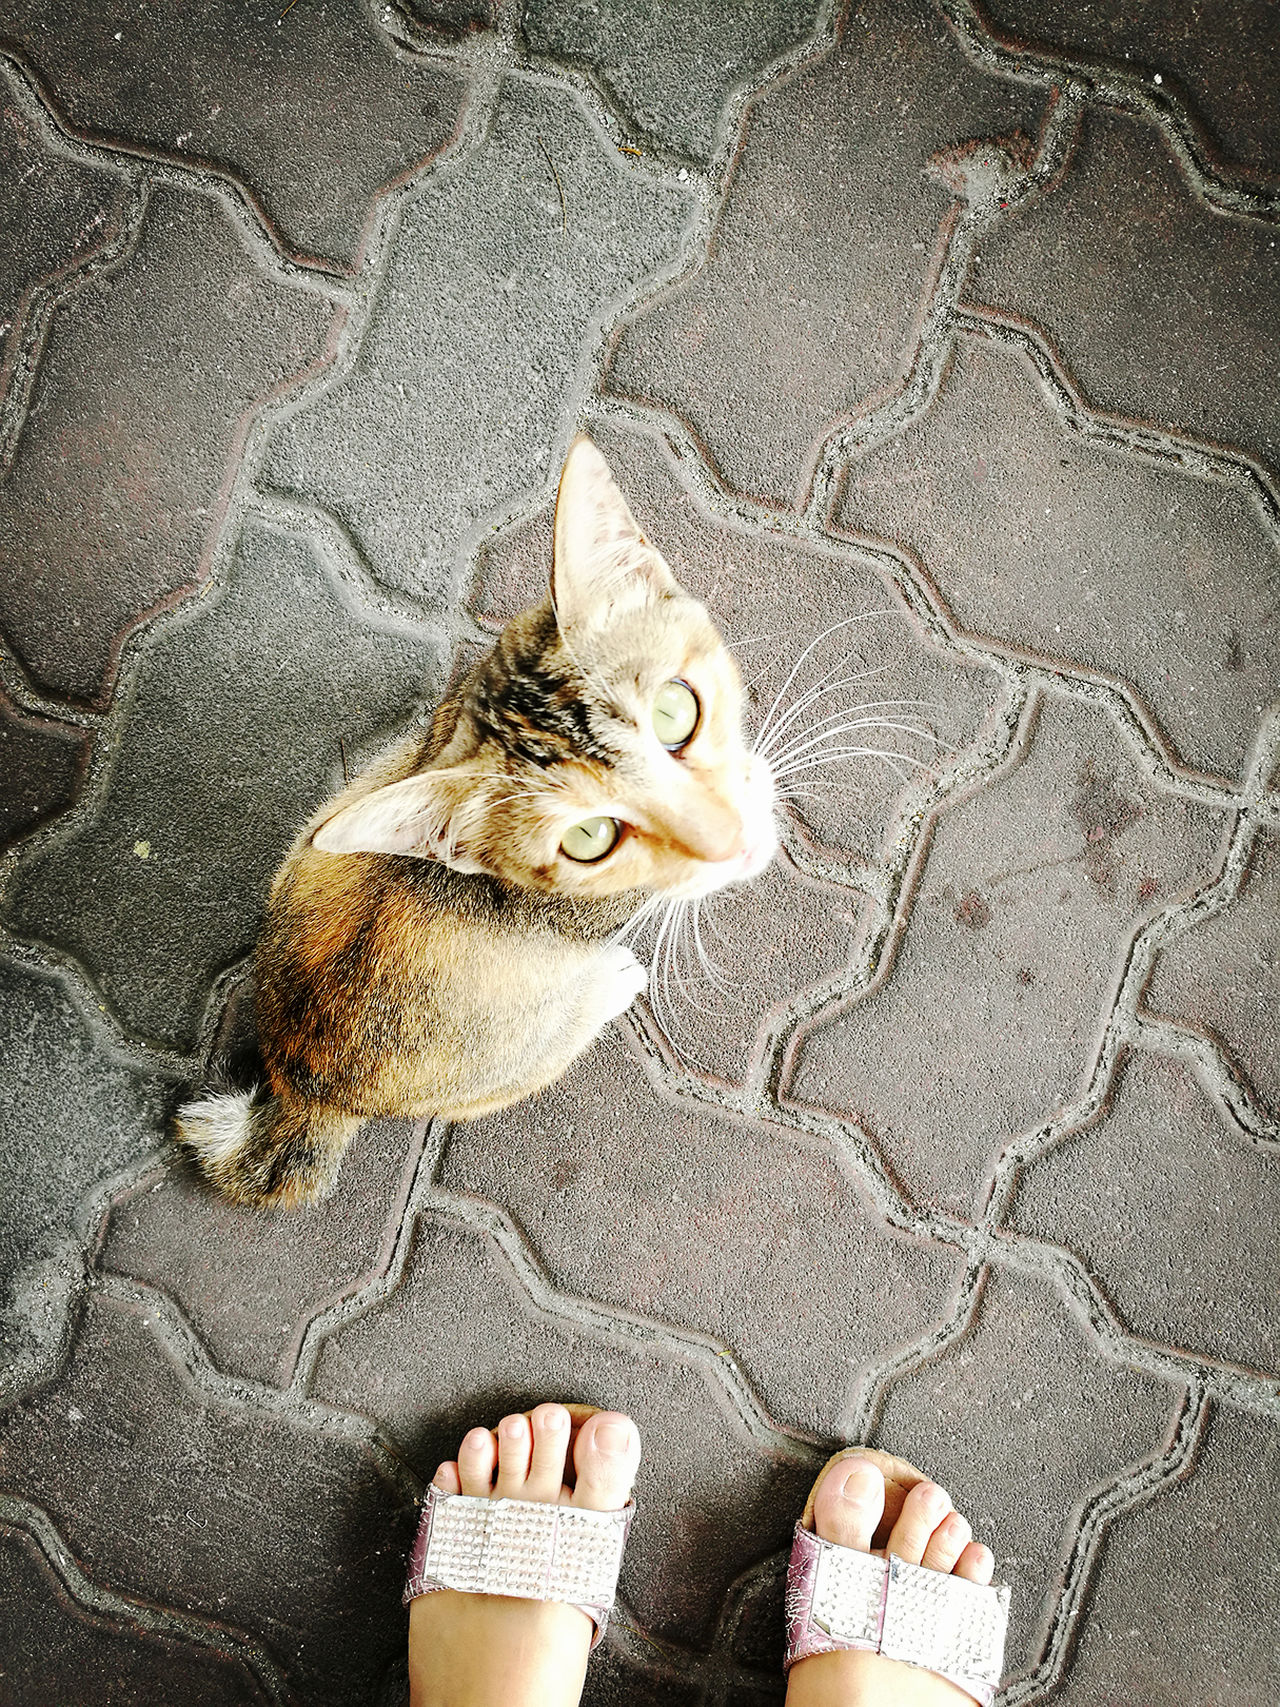 Little homeless kitty in front of restaurants. Pets Animal Animals Kitty Cat Cats Homeless Homeless Cats Homeless Animal Cute Lovely Lovely Cat HuaweiP9 Hua Wei P9 Plus Huawei P9 Plus Lonely